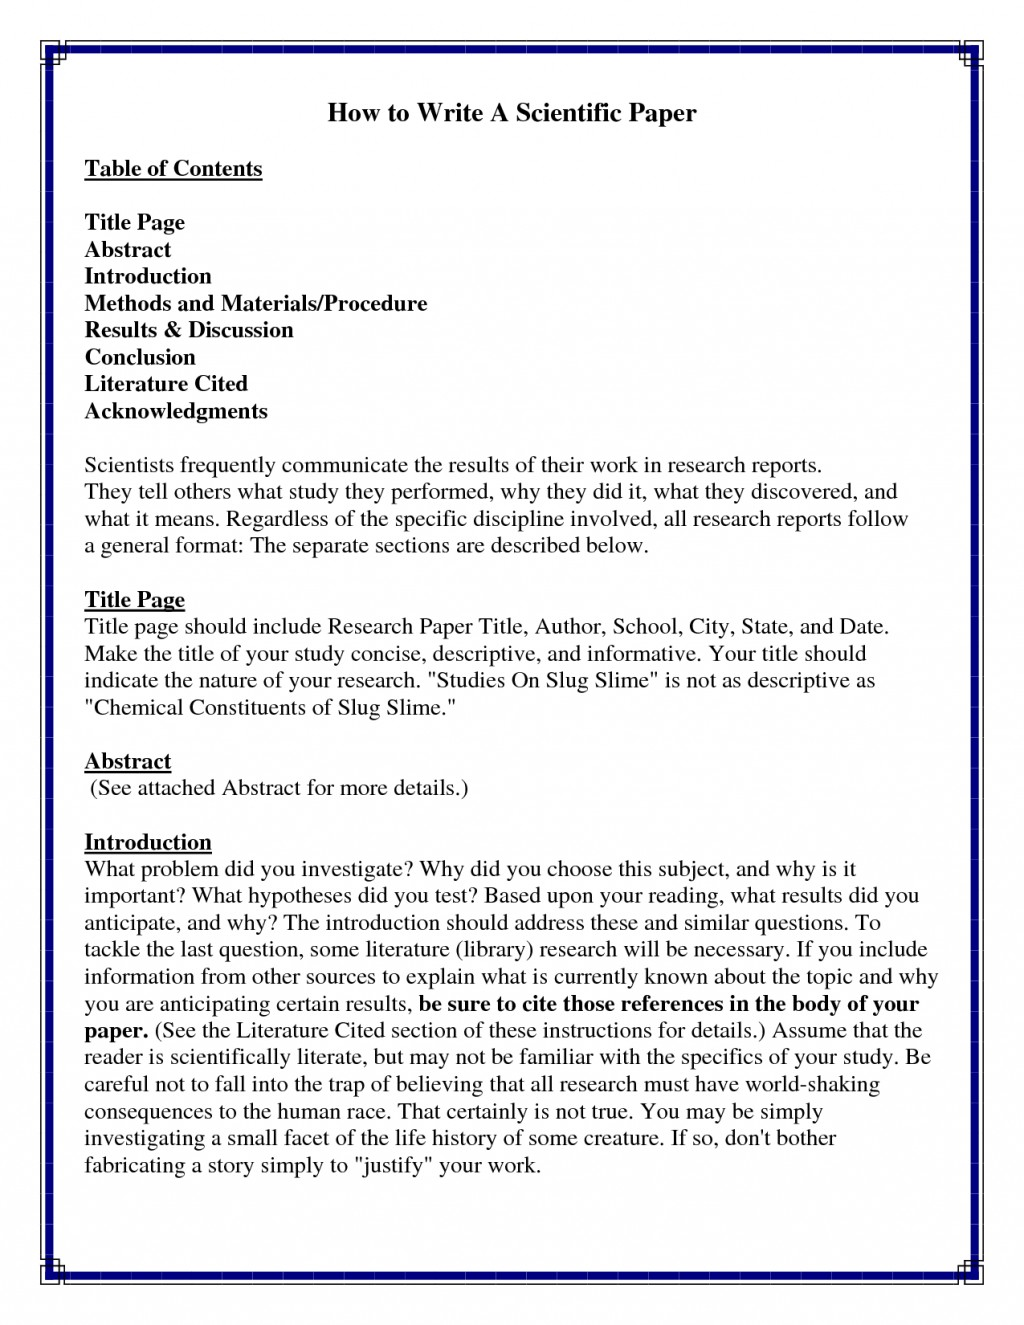 002 Essay Example How To Write Research Huidbfbtx Paper Excellent A Proposal In Apa Format Mla Large